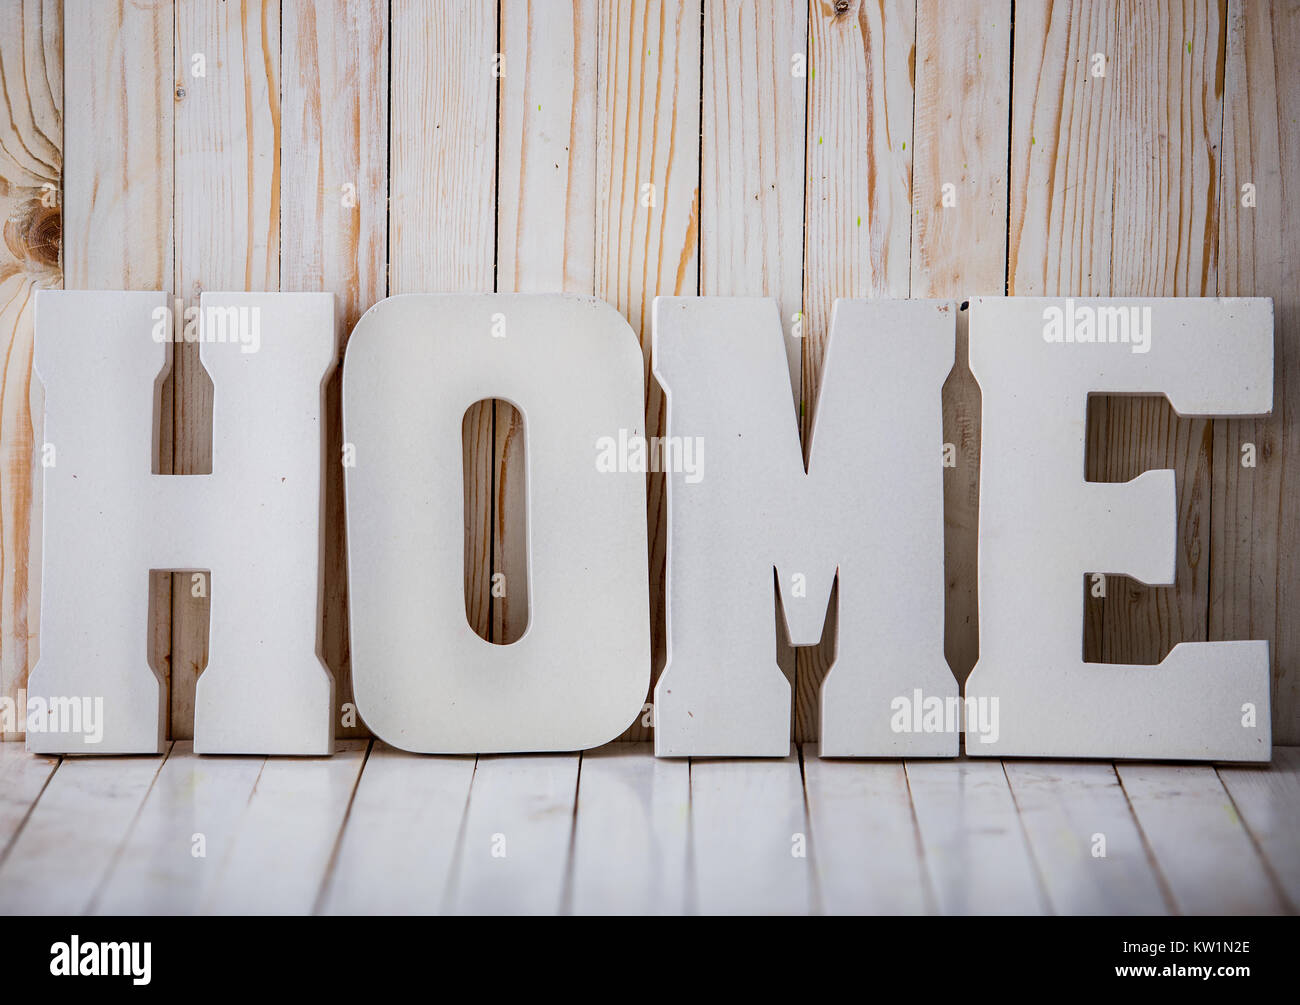 White HOME sign on wooden background - Stock Image